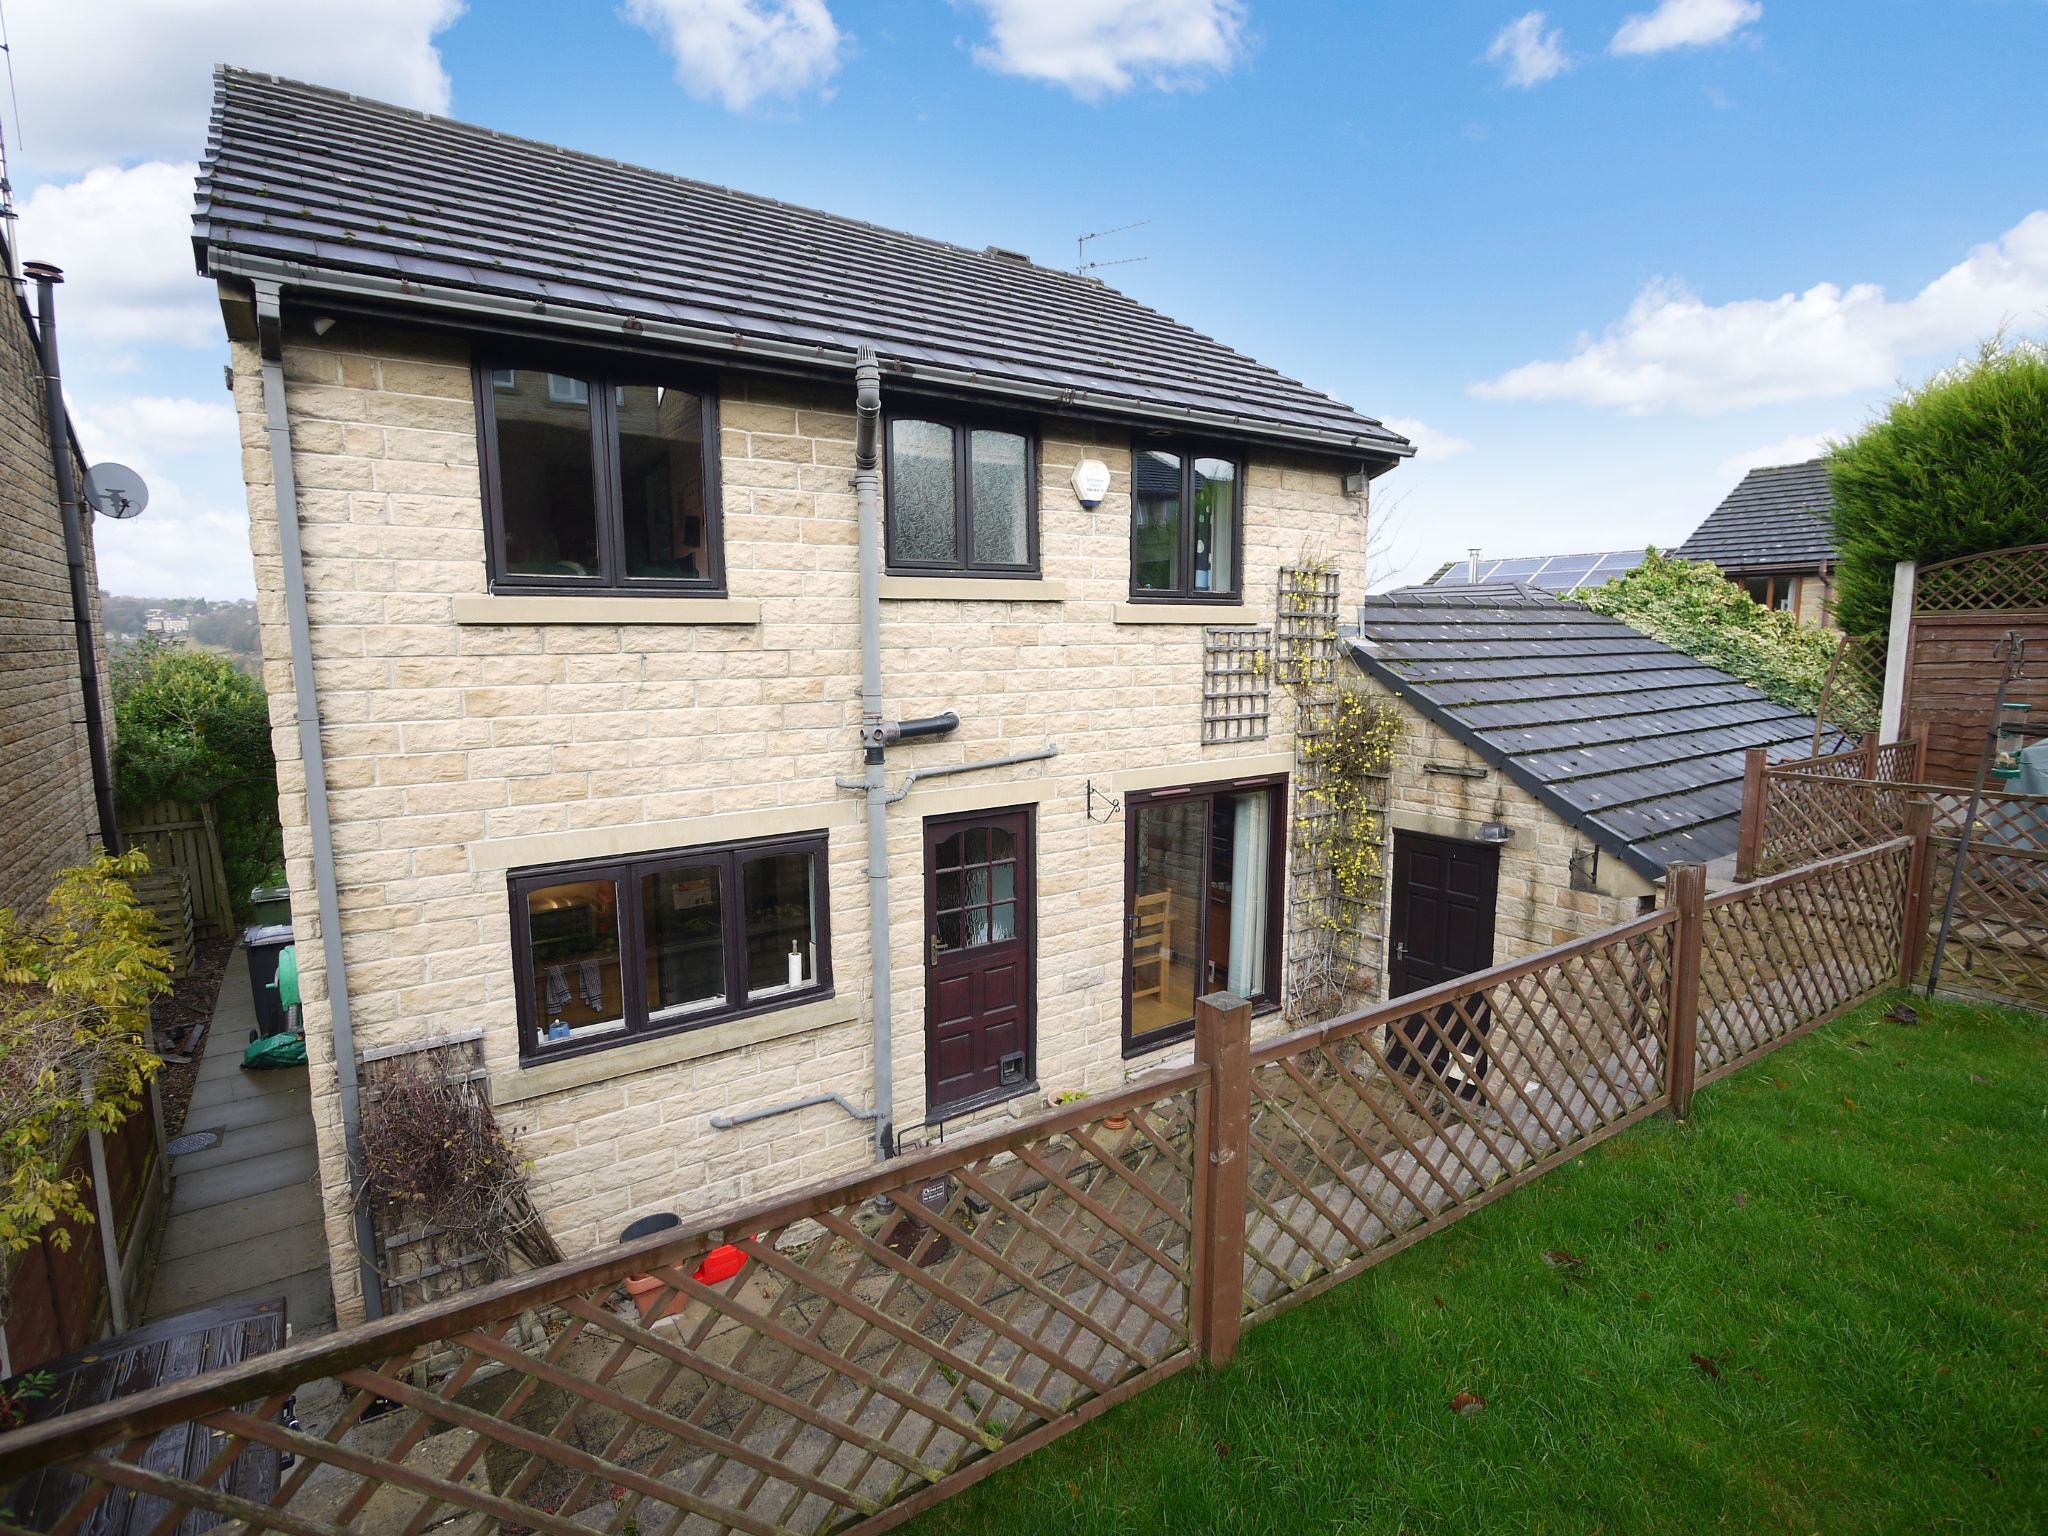 4 bedroom detached house SSTC in Brighouse - Rear.